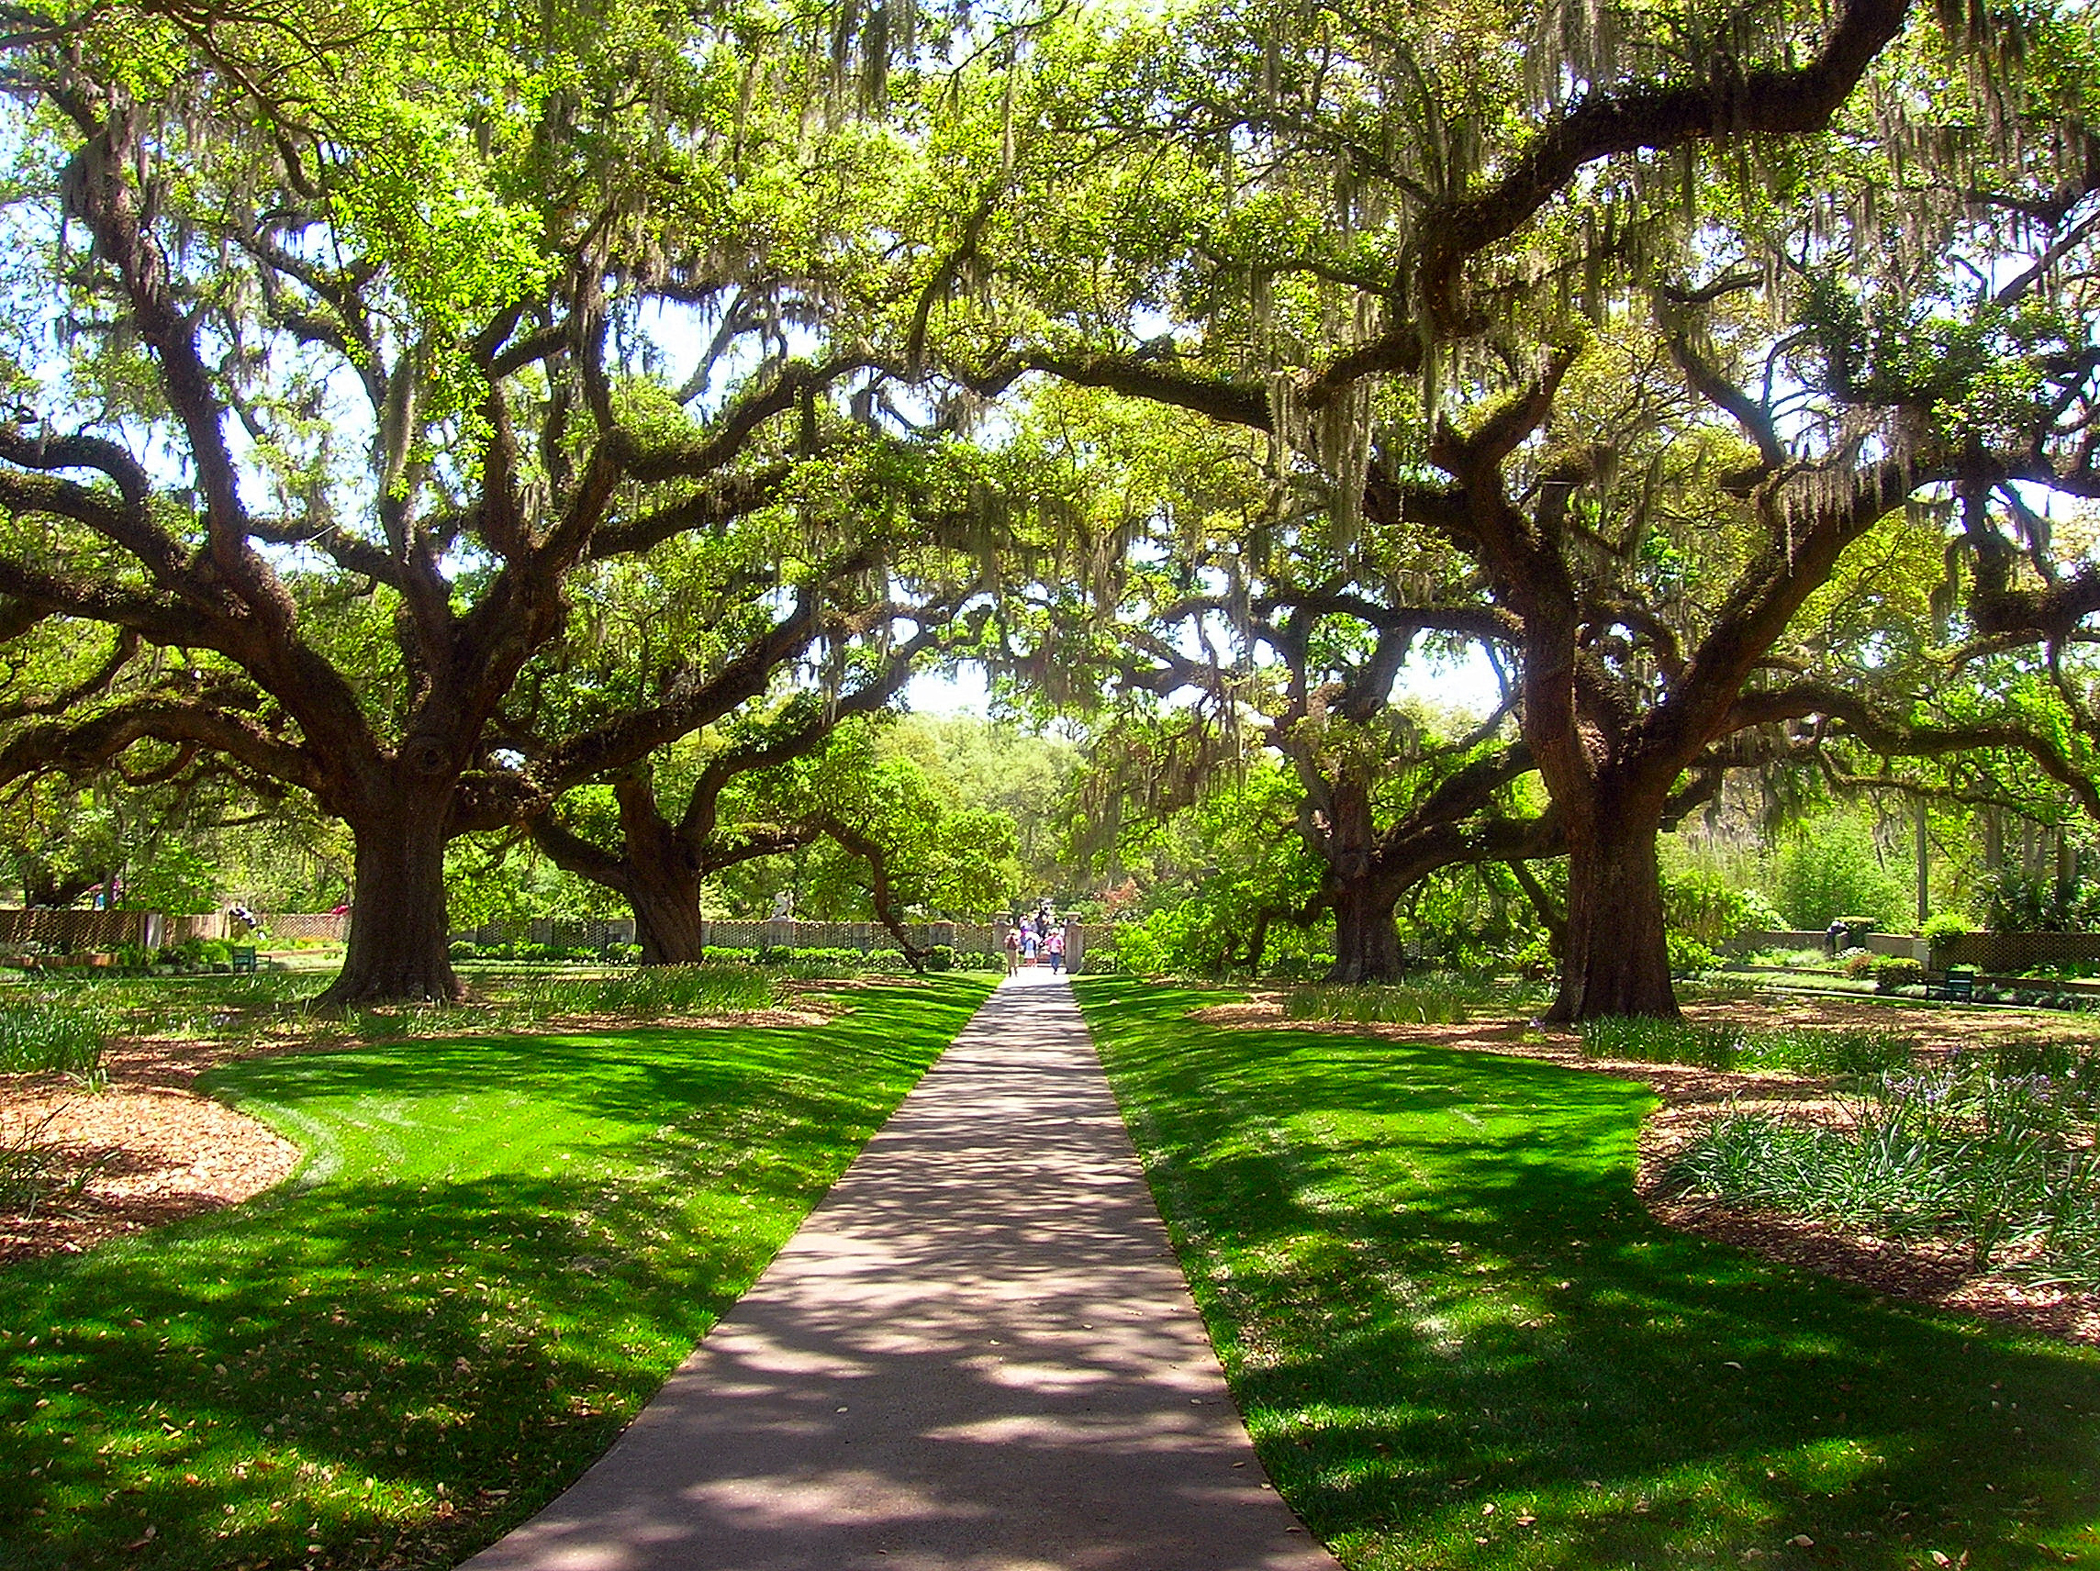 Brookgreen gardens - Those interested in art and history will be thrilled to discover Brookgreen Gardens, a national historic landmark showcasing the world's largest collection of outdoor American sculpture. The lush, natural beauty of the gardens is another wonder to behold.